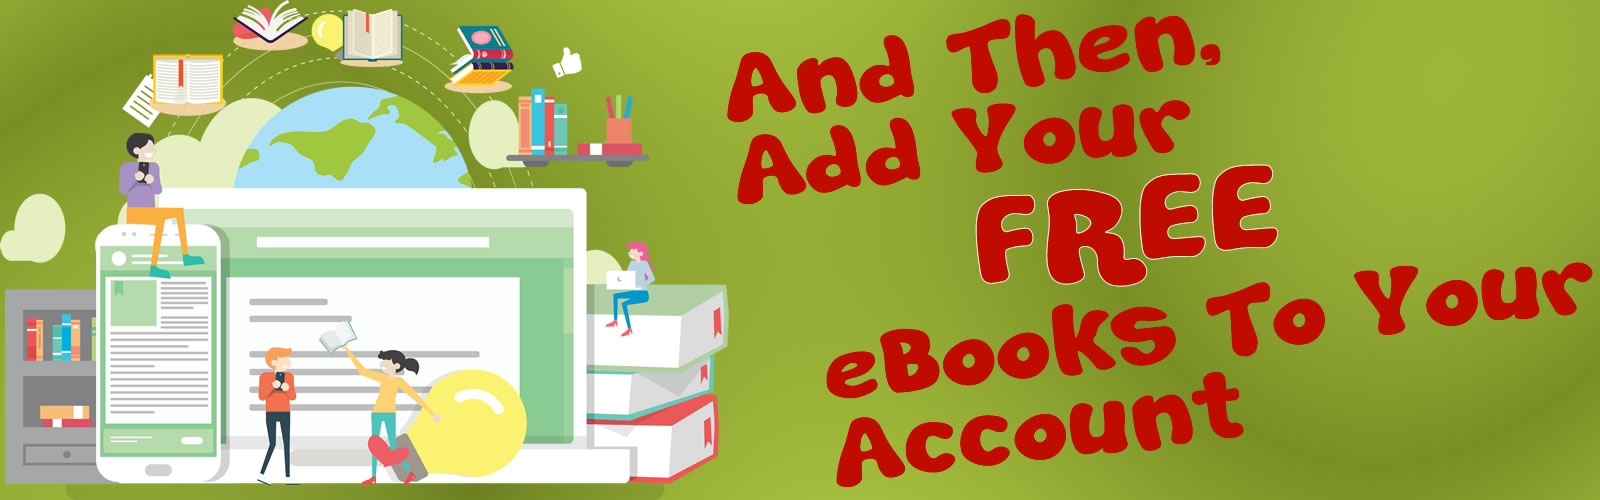 Add Your FREE Books To Your Account